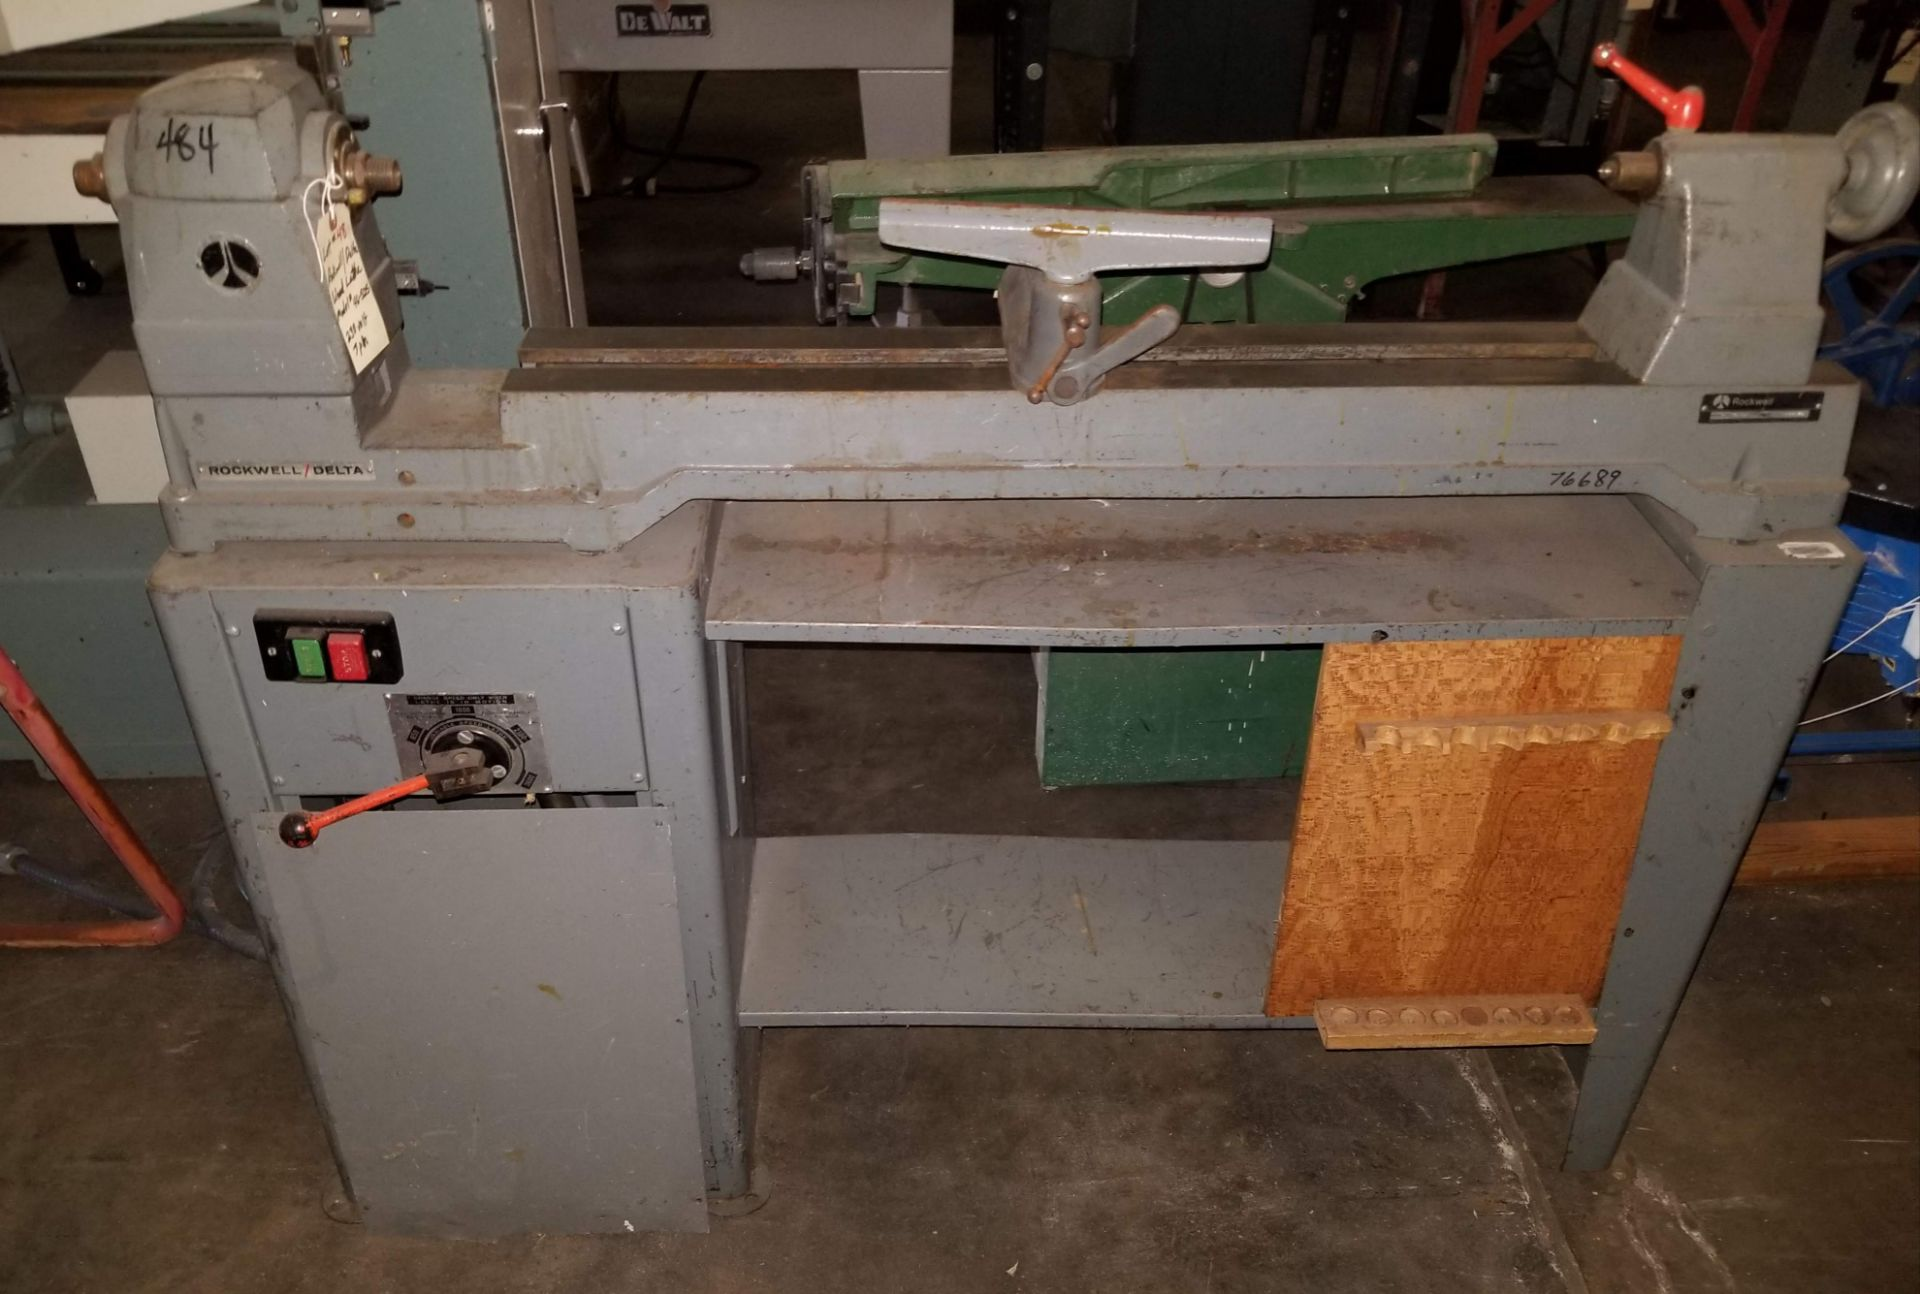 Lot 48 - Rockwell Delta Wood Lathe Model # 46-525, 230V 3ph, variable speed gap bed wood lathe in very good